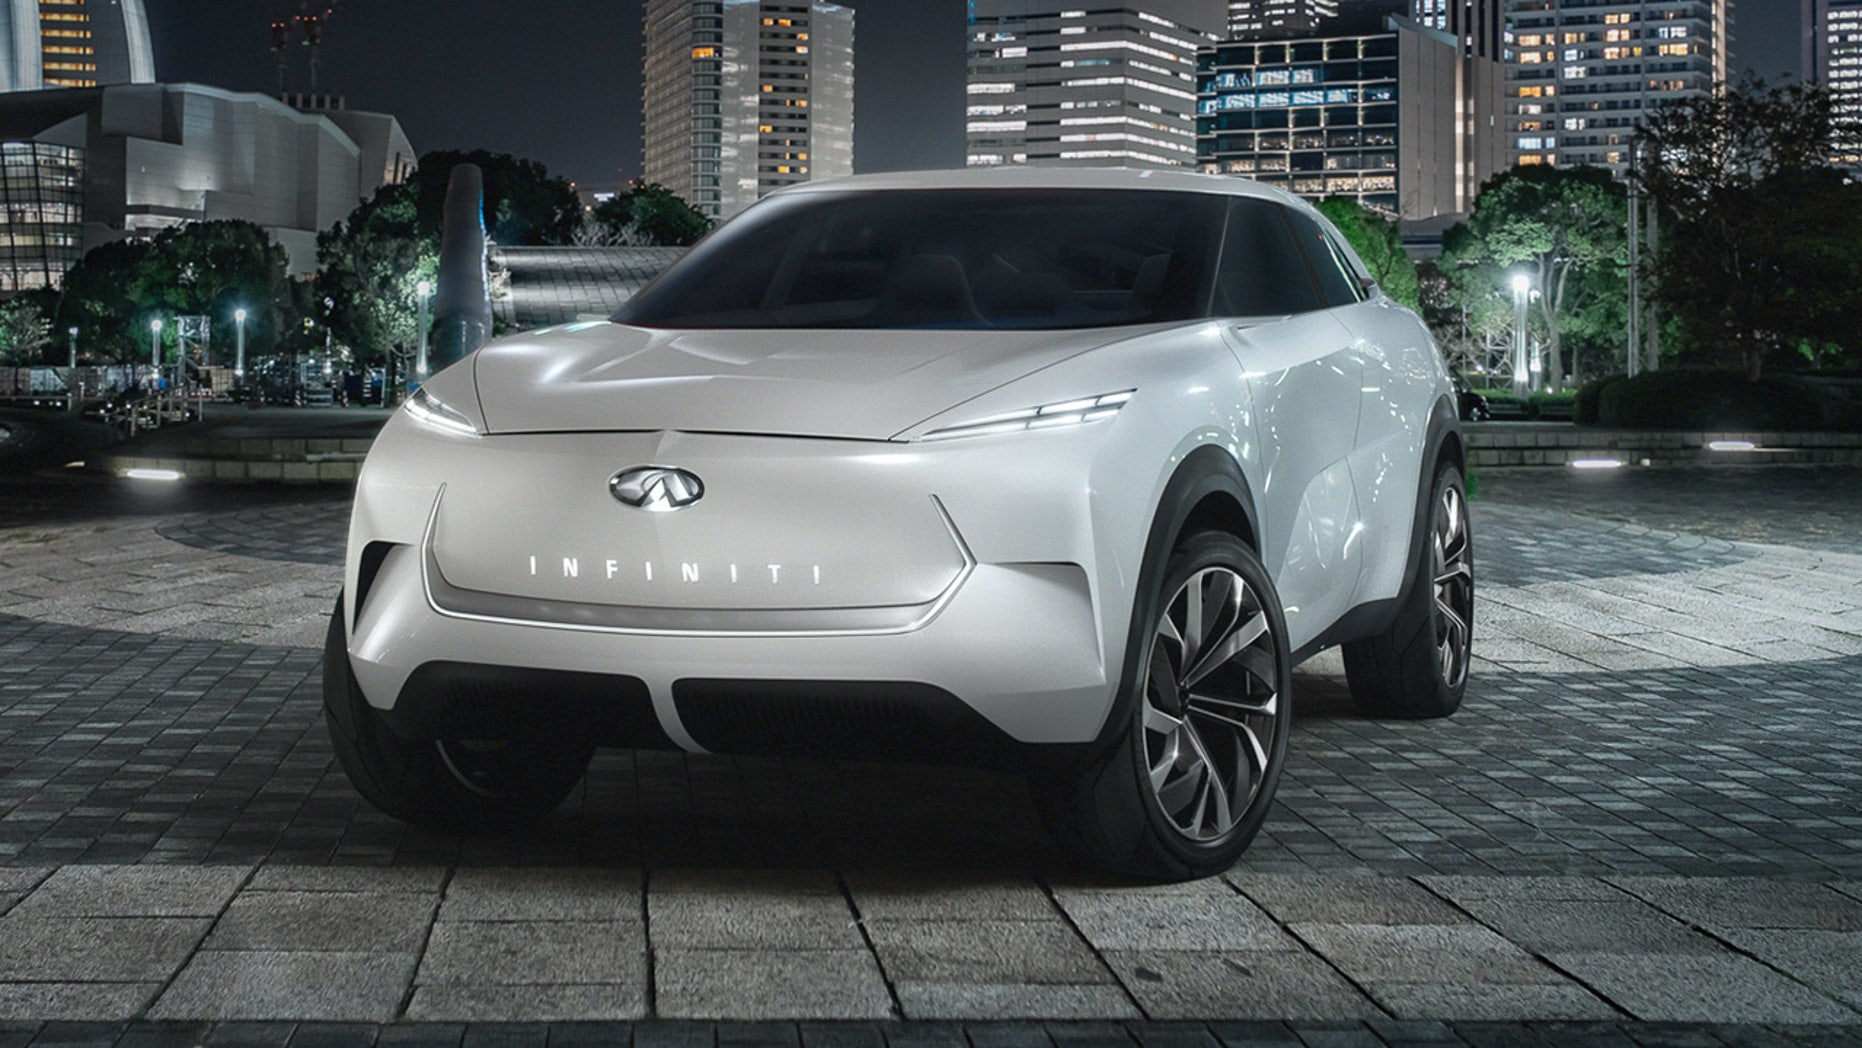 Infiniti's Detroit Auto Show debut is the electric QX Inspiration concept Roadshow